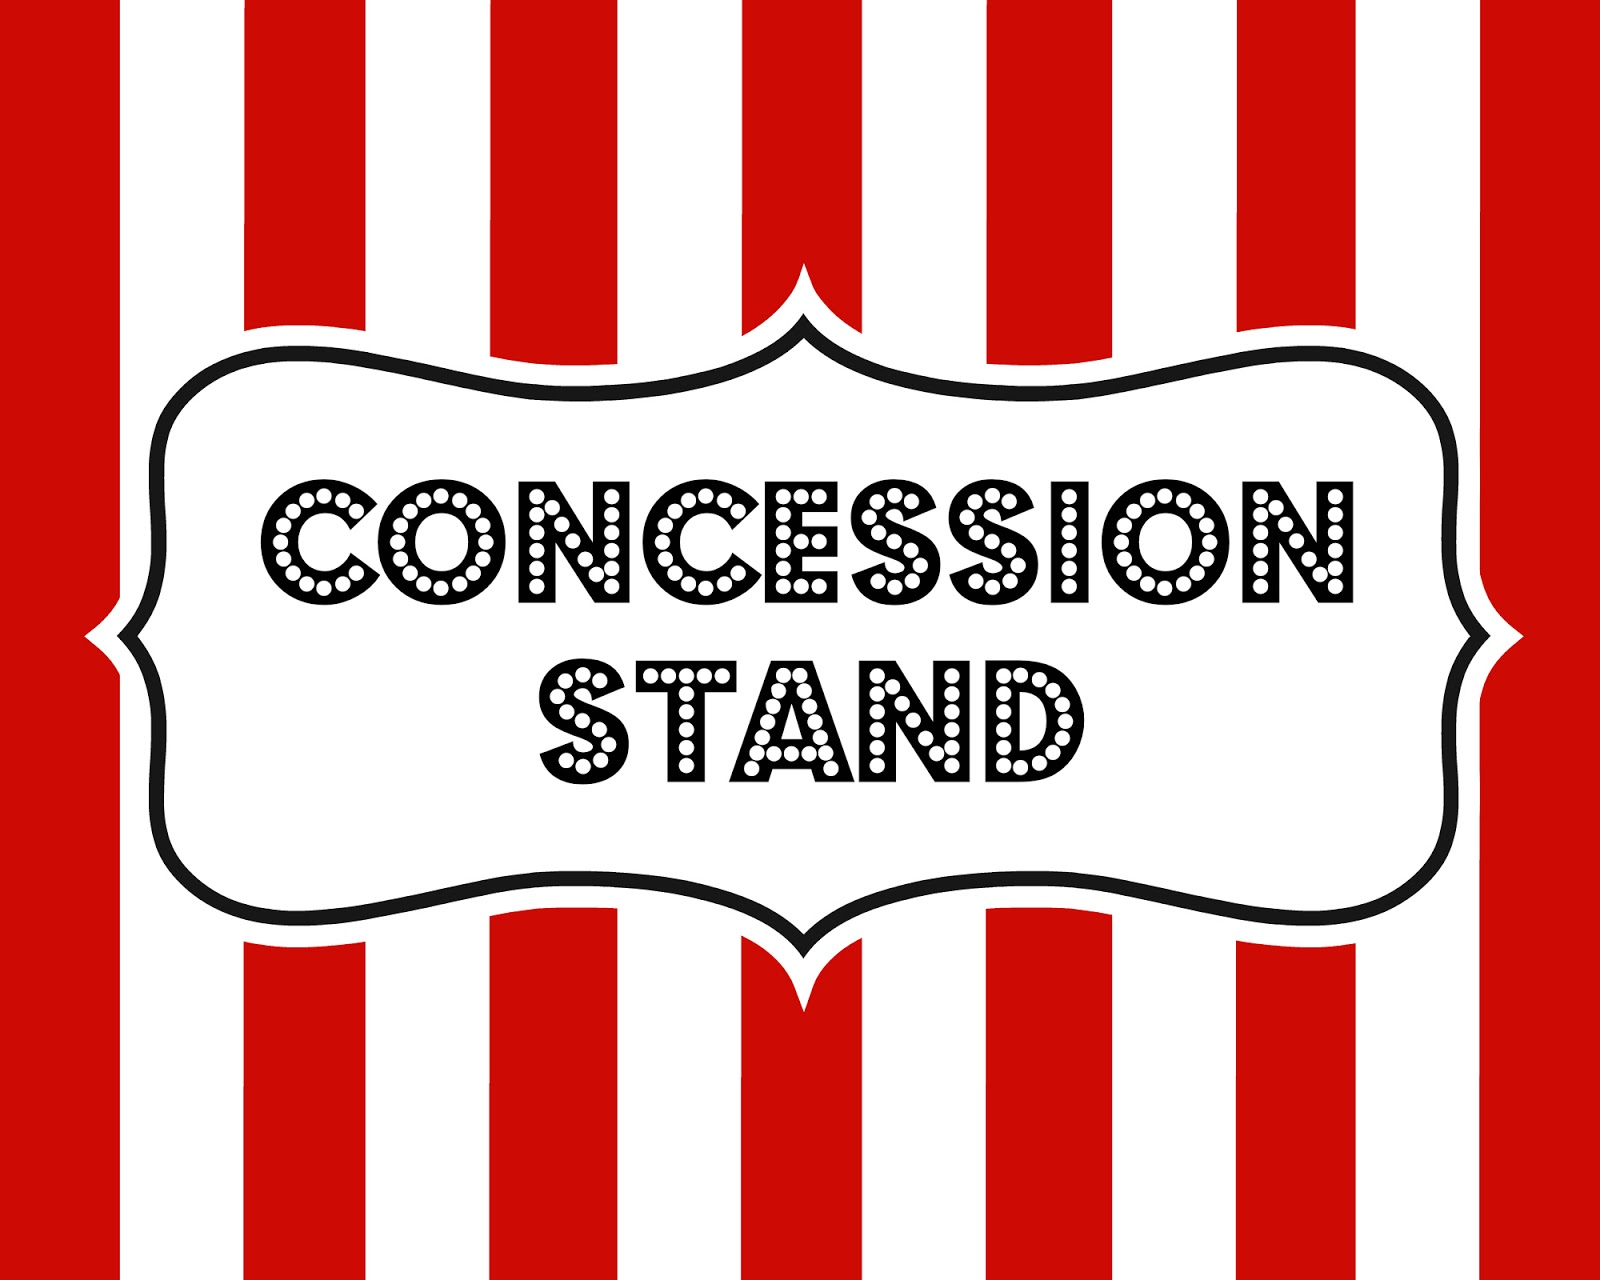 Juicy image intended for concession stand signs printable